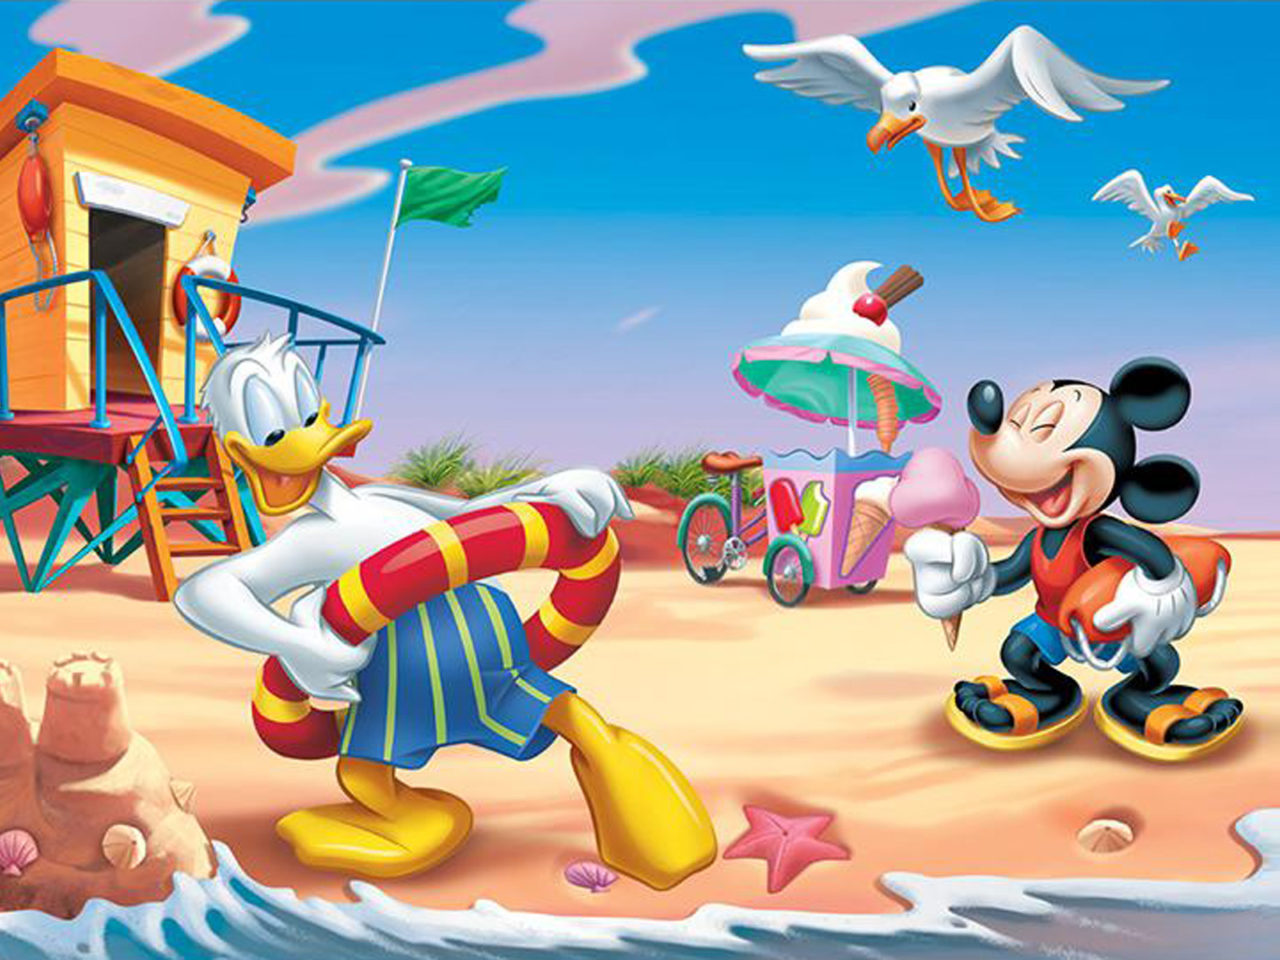 Chip And Dale Wallpaper Hd Donald Duck And Mickey Mouse Summer Vacation Beach Hd